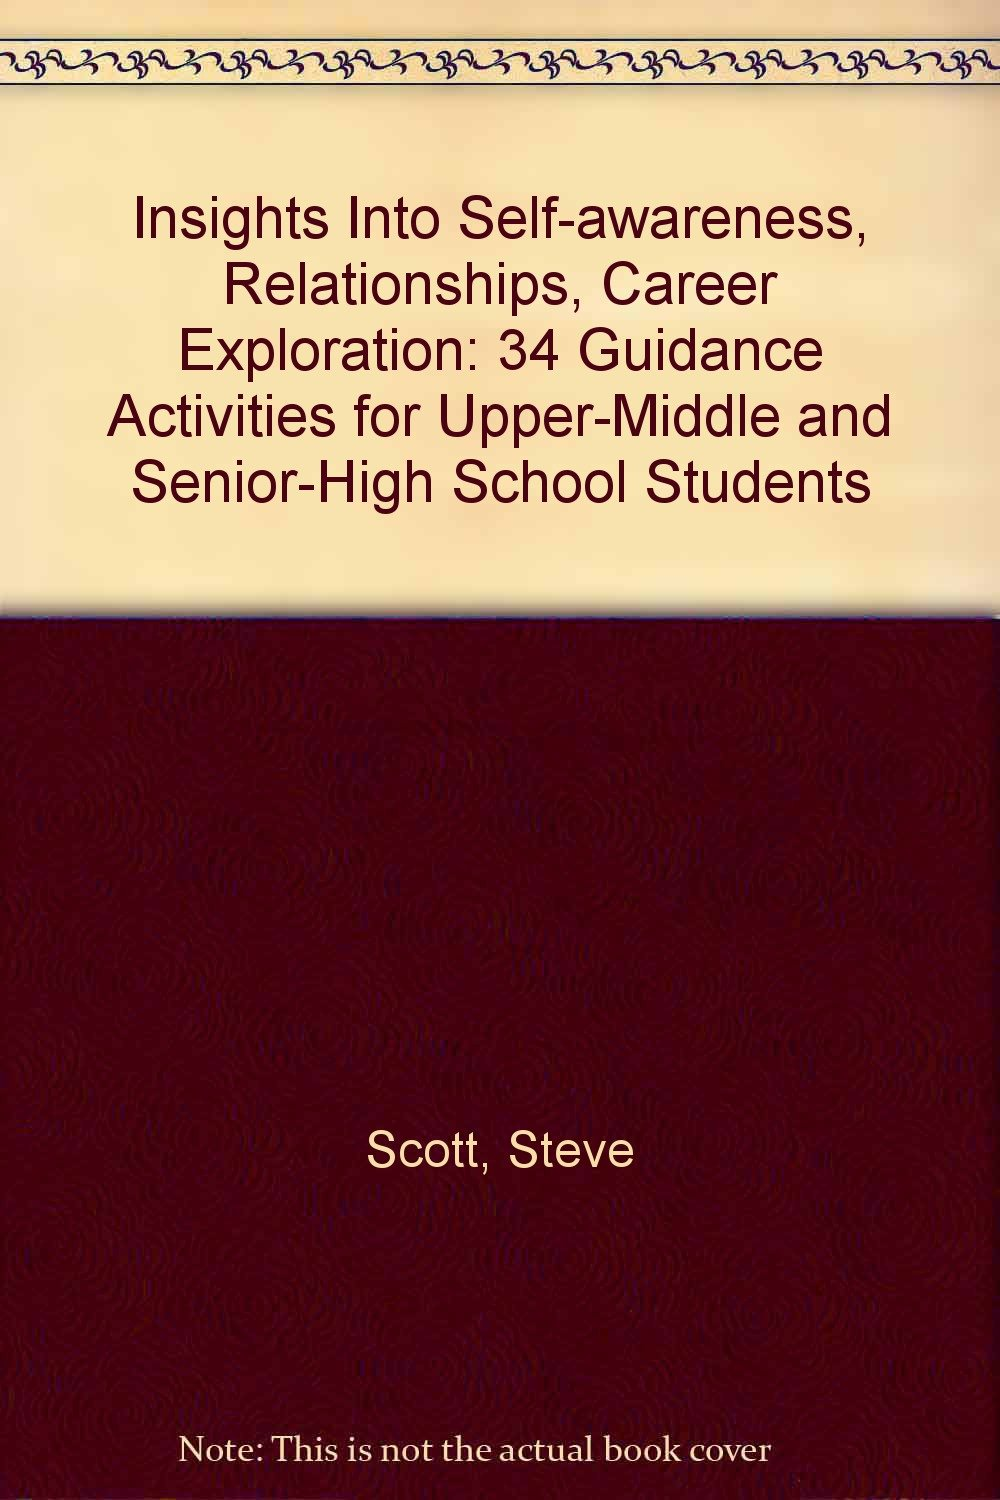 insights into self awareness relationships career exploration career exploration 34 guidance activities for upper middle and senior high school students steve scott 9781575430195 amazon com books